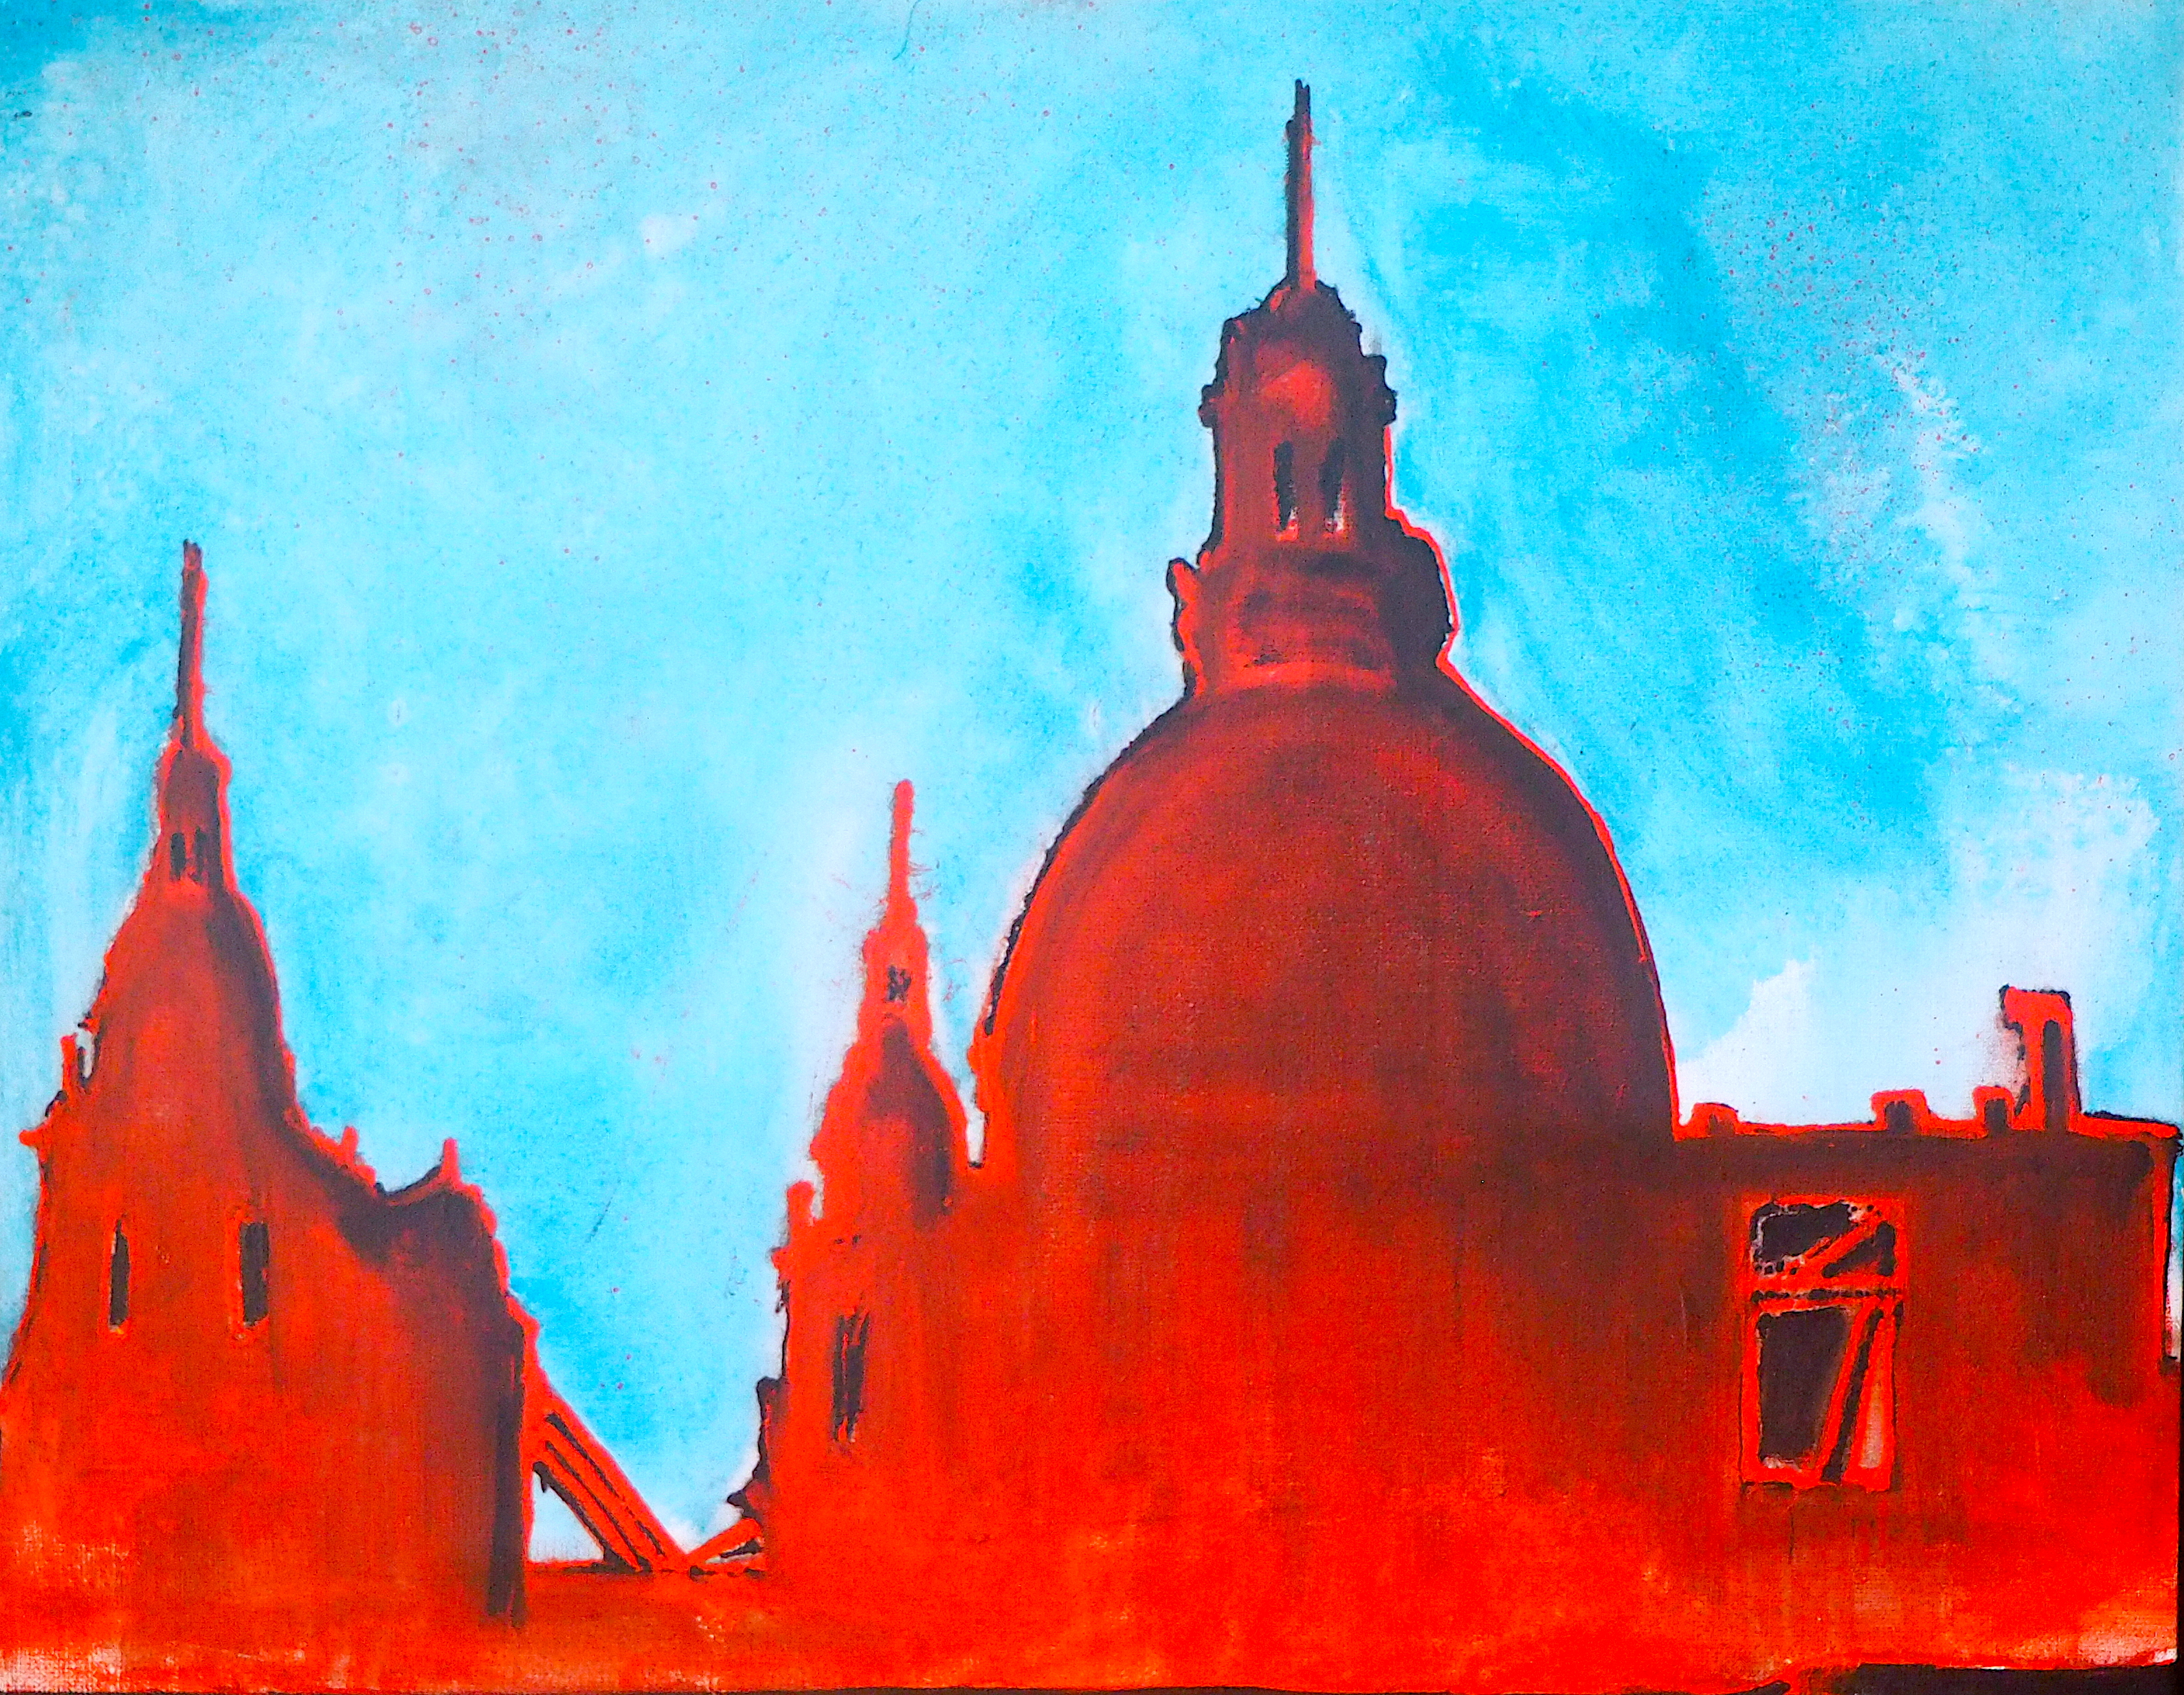 "<b>""Paris""</b> <span style= ""font-size:14px"">(2019)</span> <br><p style = ""font-size:14px"">Acrylic on canvas<br>15 x 19 in.</p>"